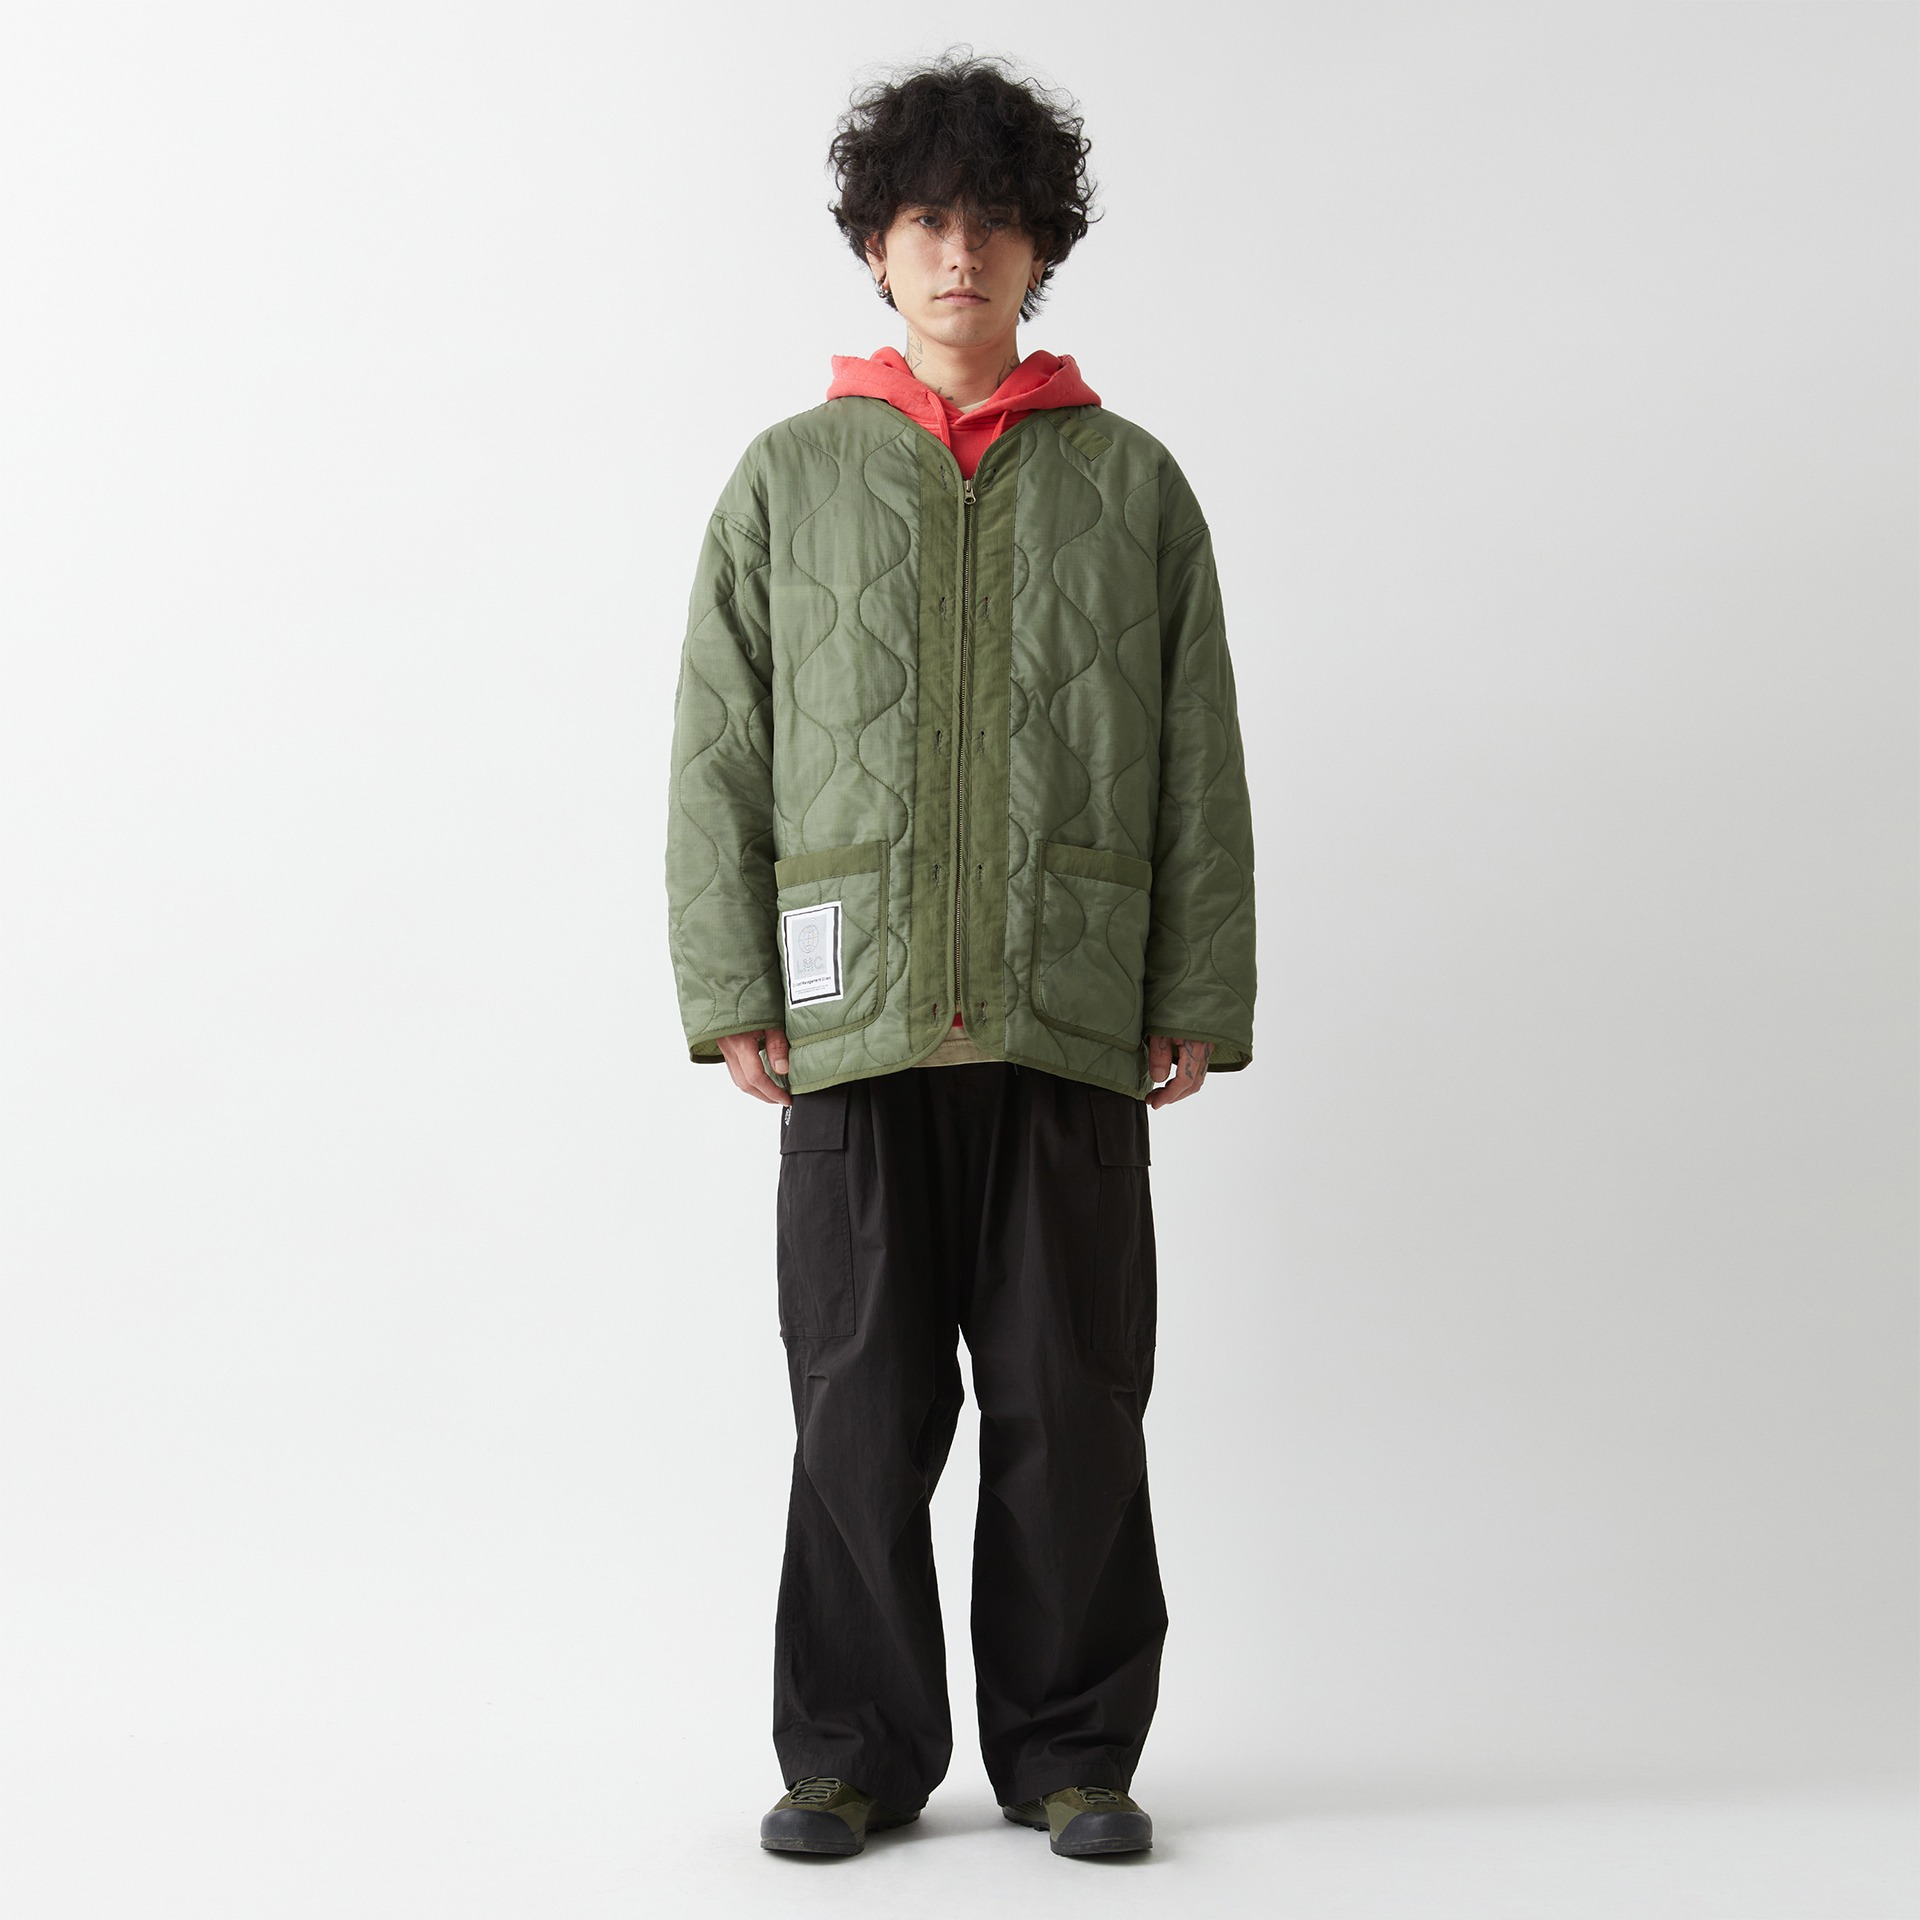 layer-LMC QUILTED LINER JACKET olive♡韓國男裝外套